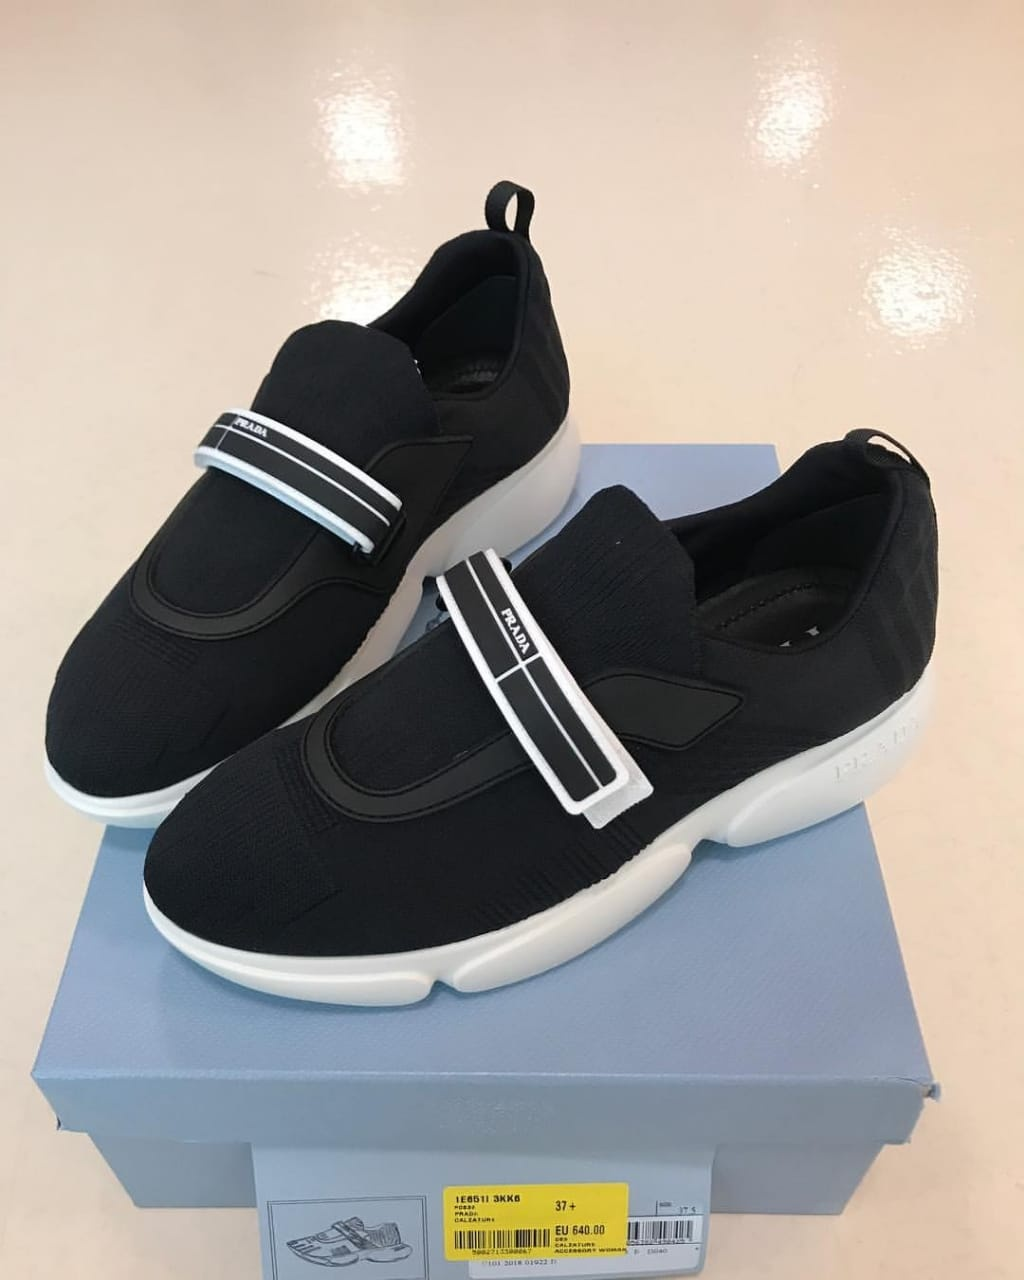 fe86d9c82d9 Where can I get the best quality sneaker replicas? - Quora